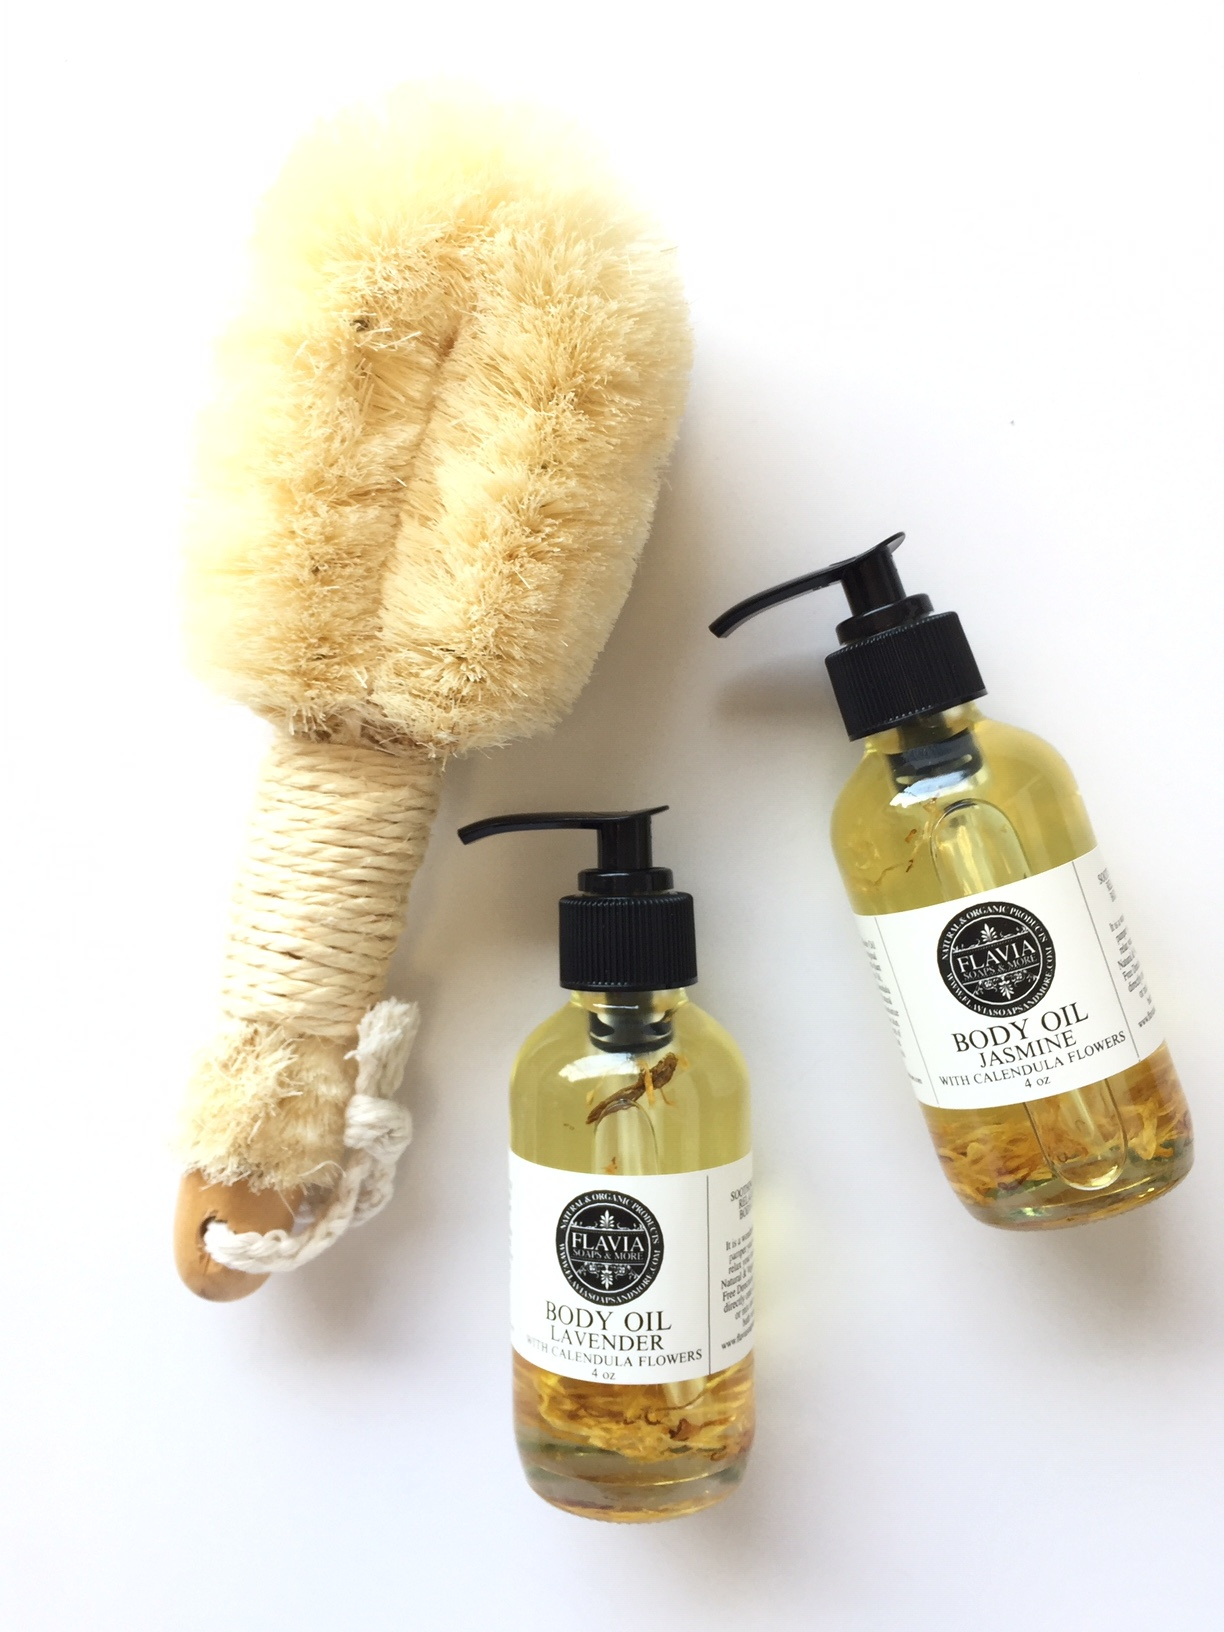 All Natural Body Oils and Palm Brush, the perfect elements for Dry Brushing.